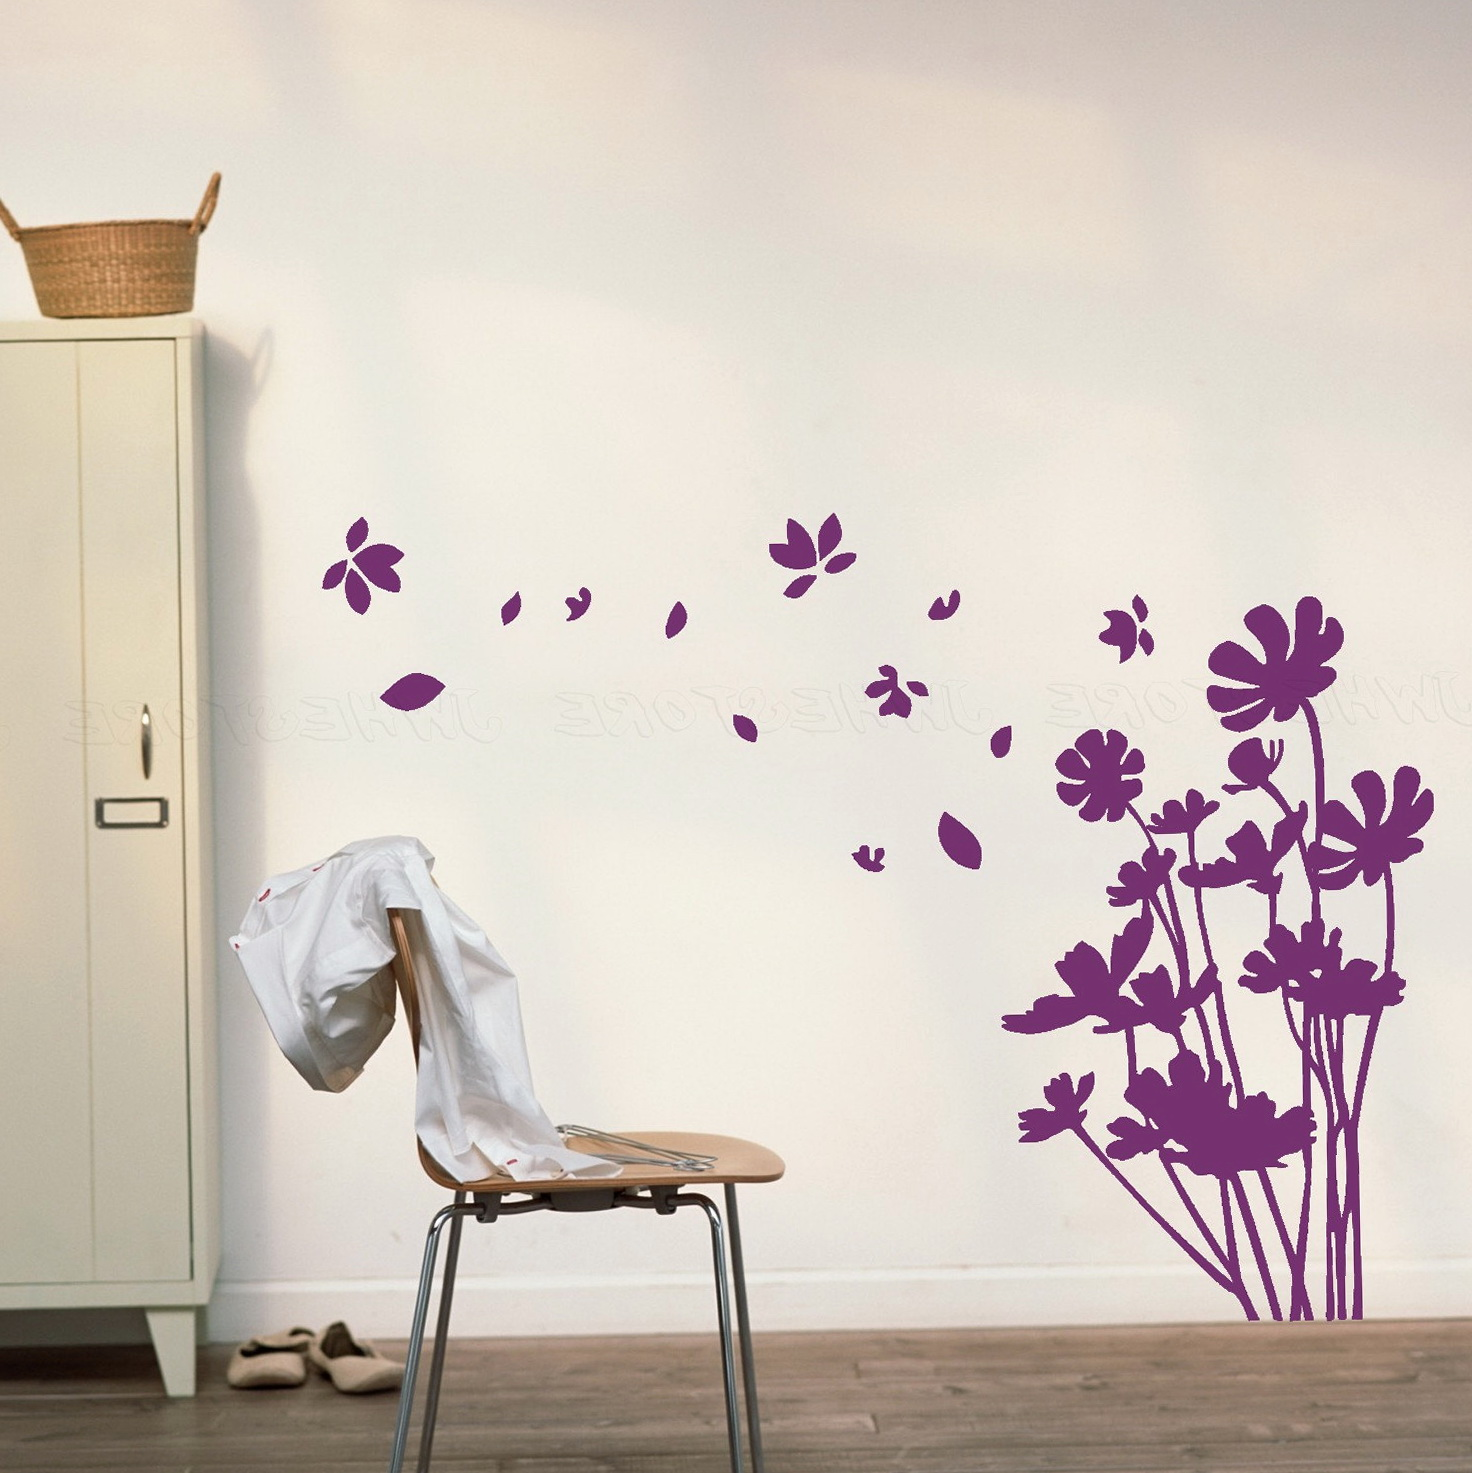 Floral Wall Art Designs